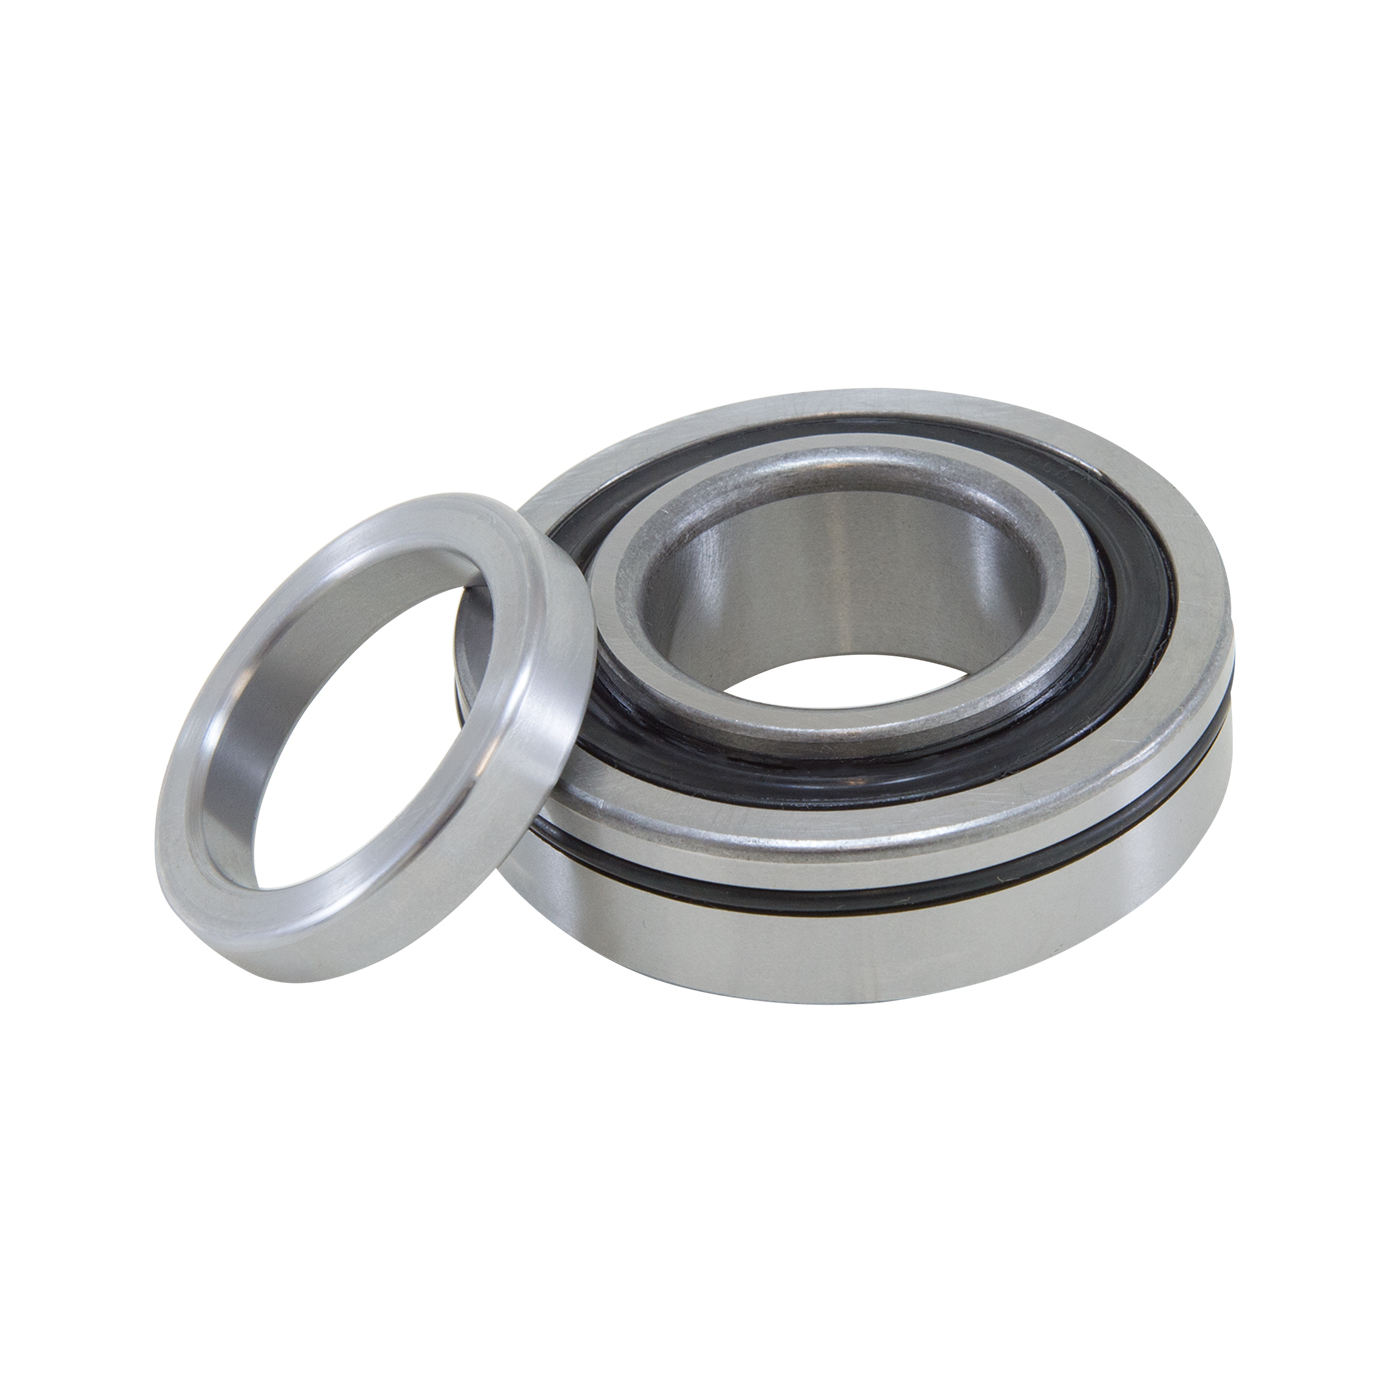 YP CJBRG-SEALED - Yukon CJ Sealed Axle Bearing for Model 20